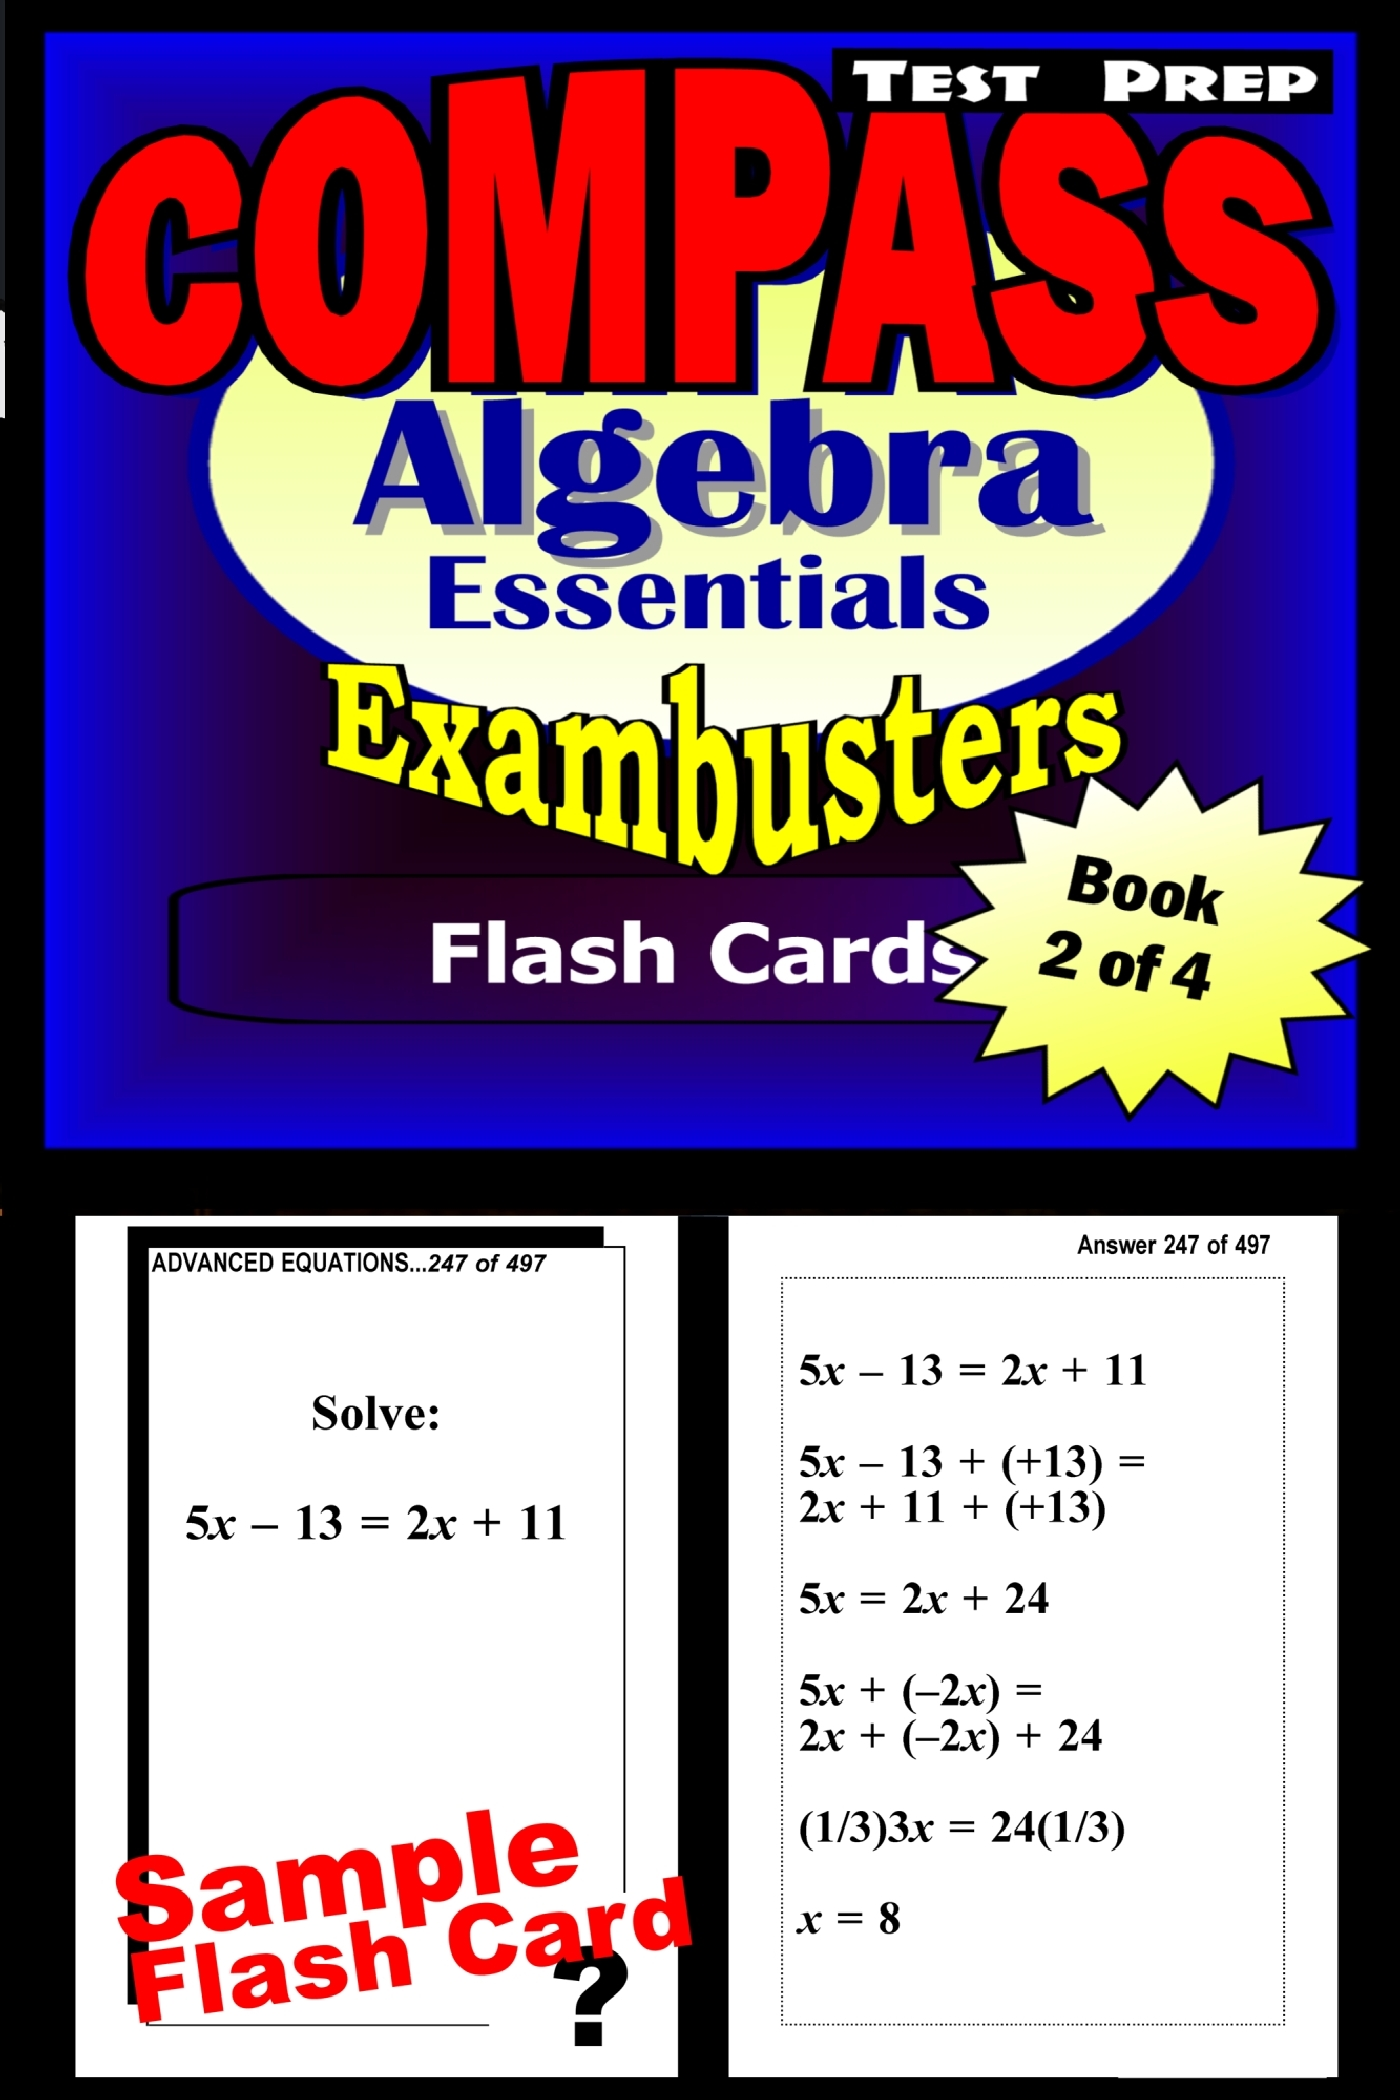 COMPASS Test Prep Algebra Review--Exambusters Flash Cards--Workbook 2 of 4: Compass Exam Study Guide